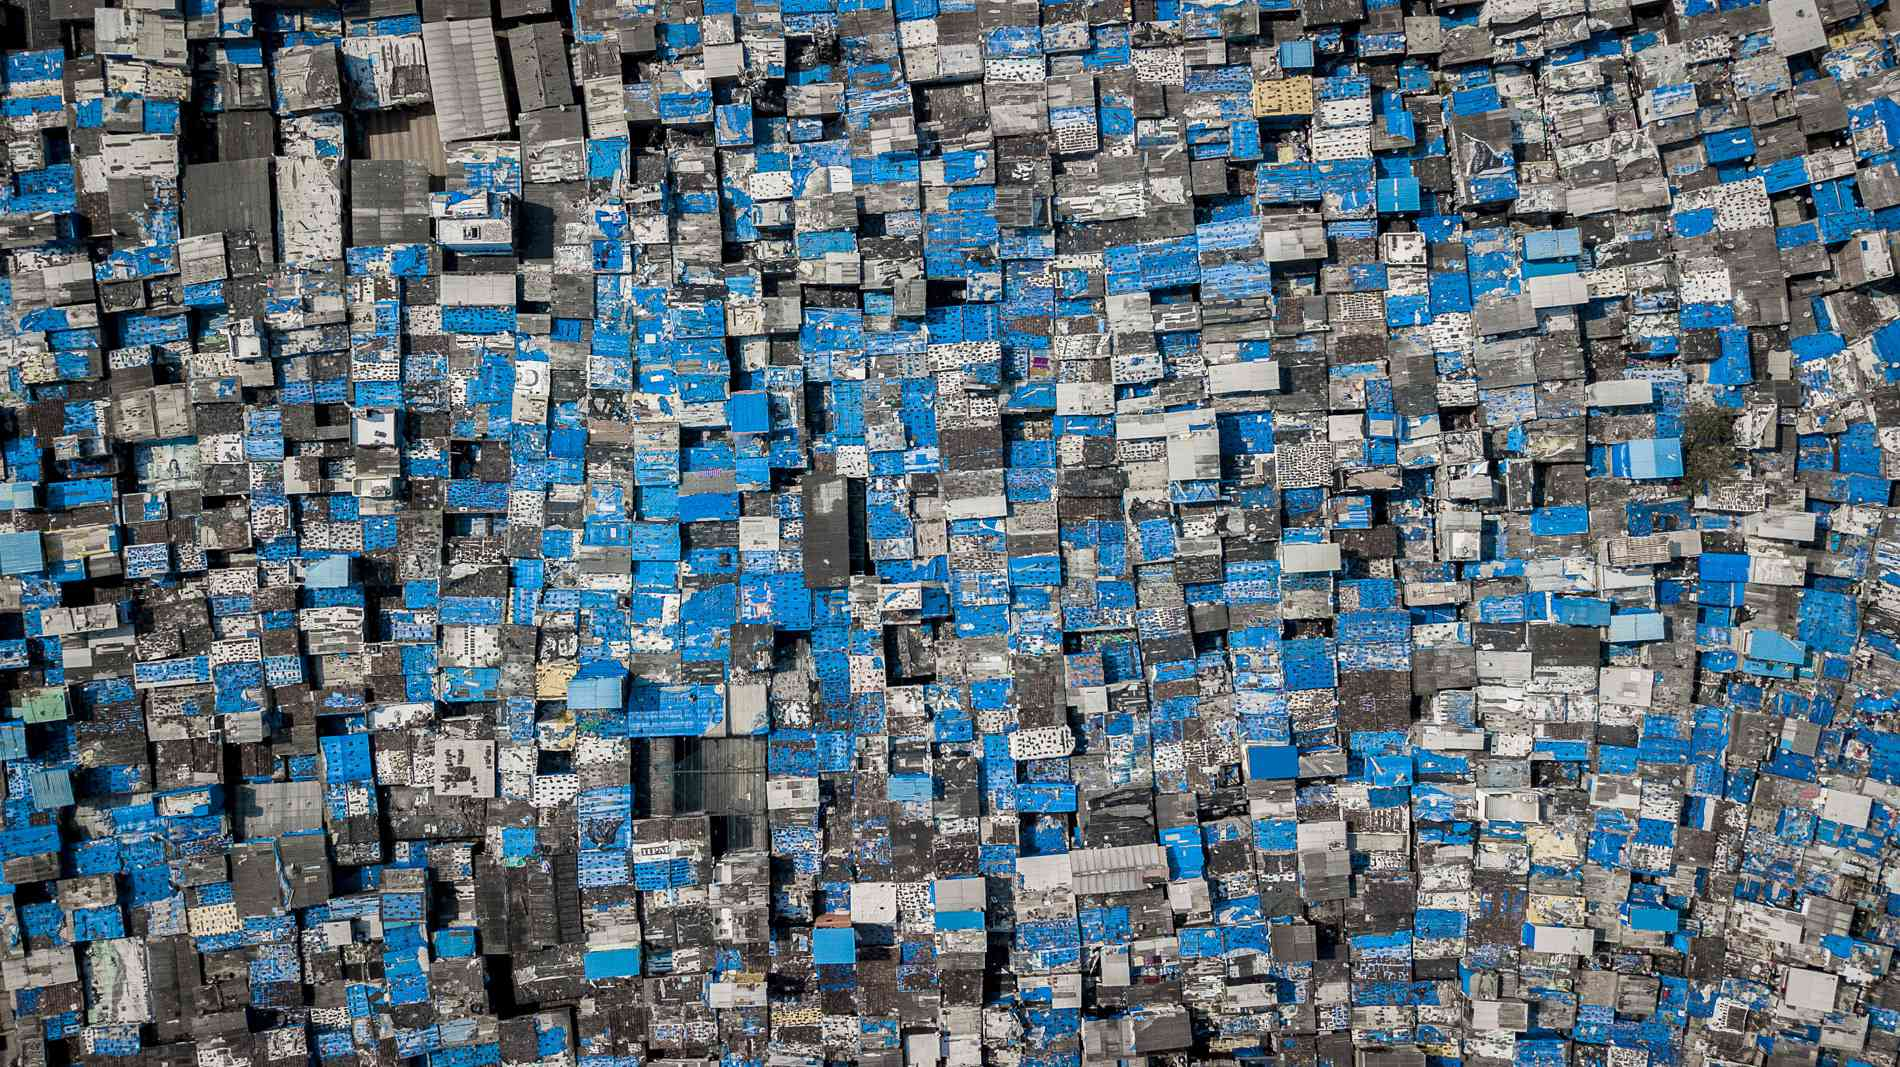 A closer view of Dharavi shows the immense density of the slum cluster.